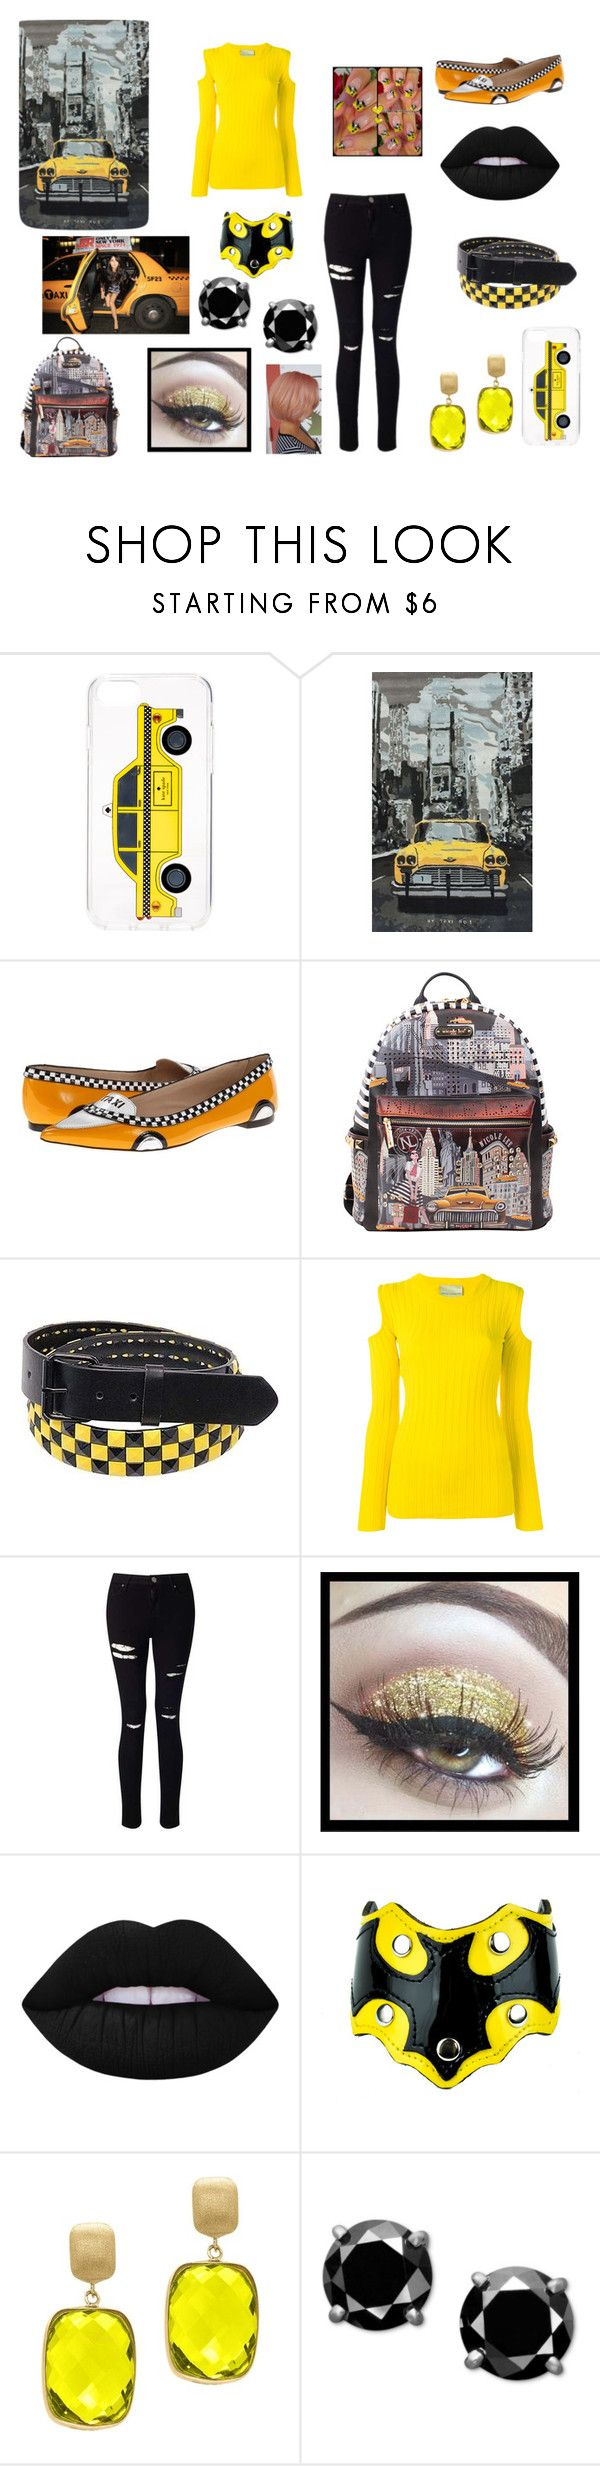 """""""Jessamine"""" by maryrbarker on Polyvore featuring Kate Spade, nuLOOM, Nicole Lee, TAXI, American Apparel, Erika Cavallini Semi-Couture, Miss Selfridge, Lime Crime, Effy Jewelry and yellow"""